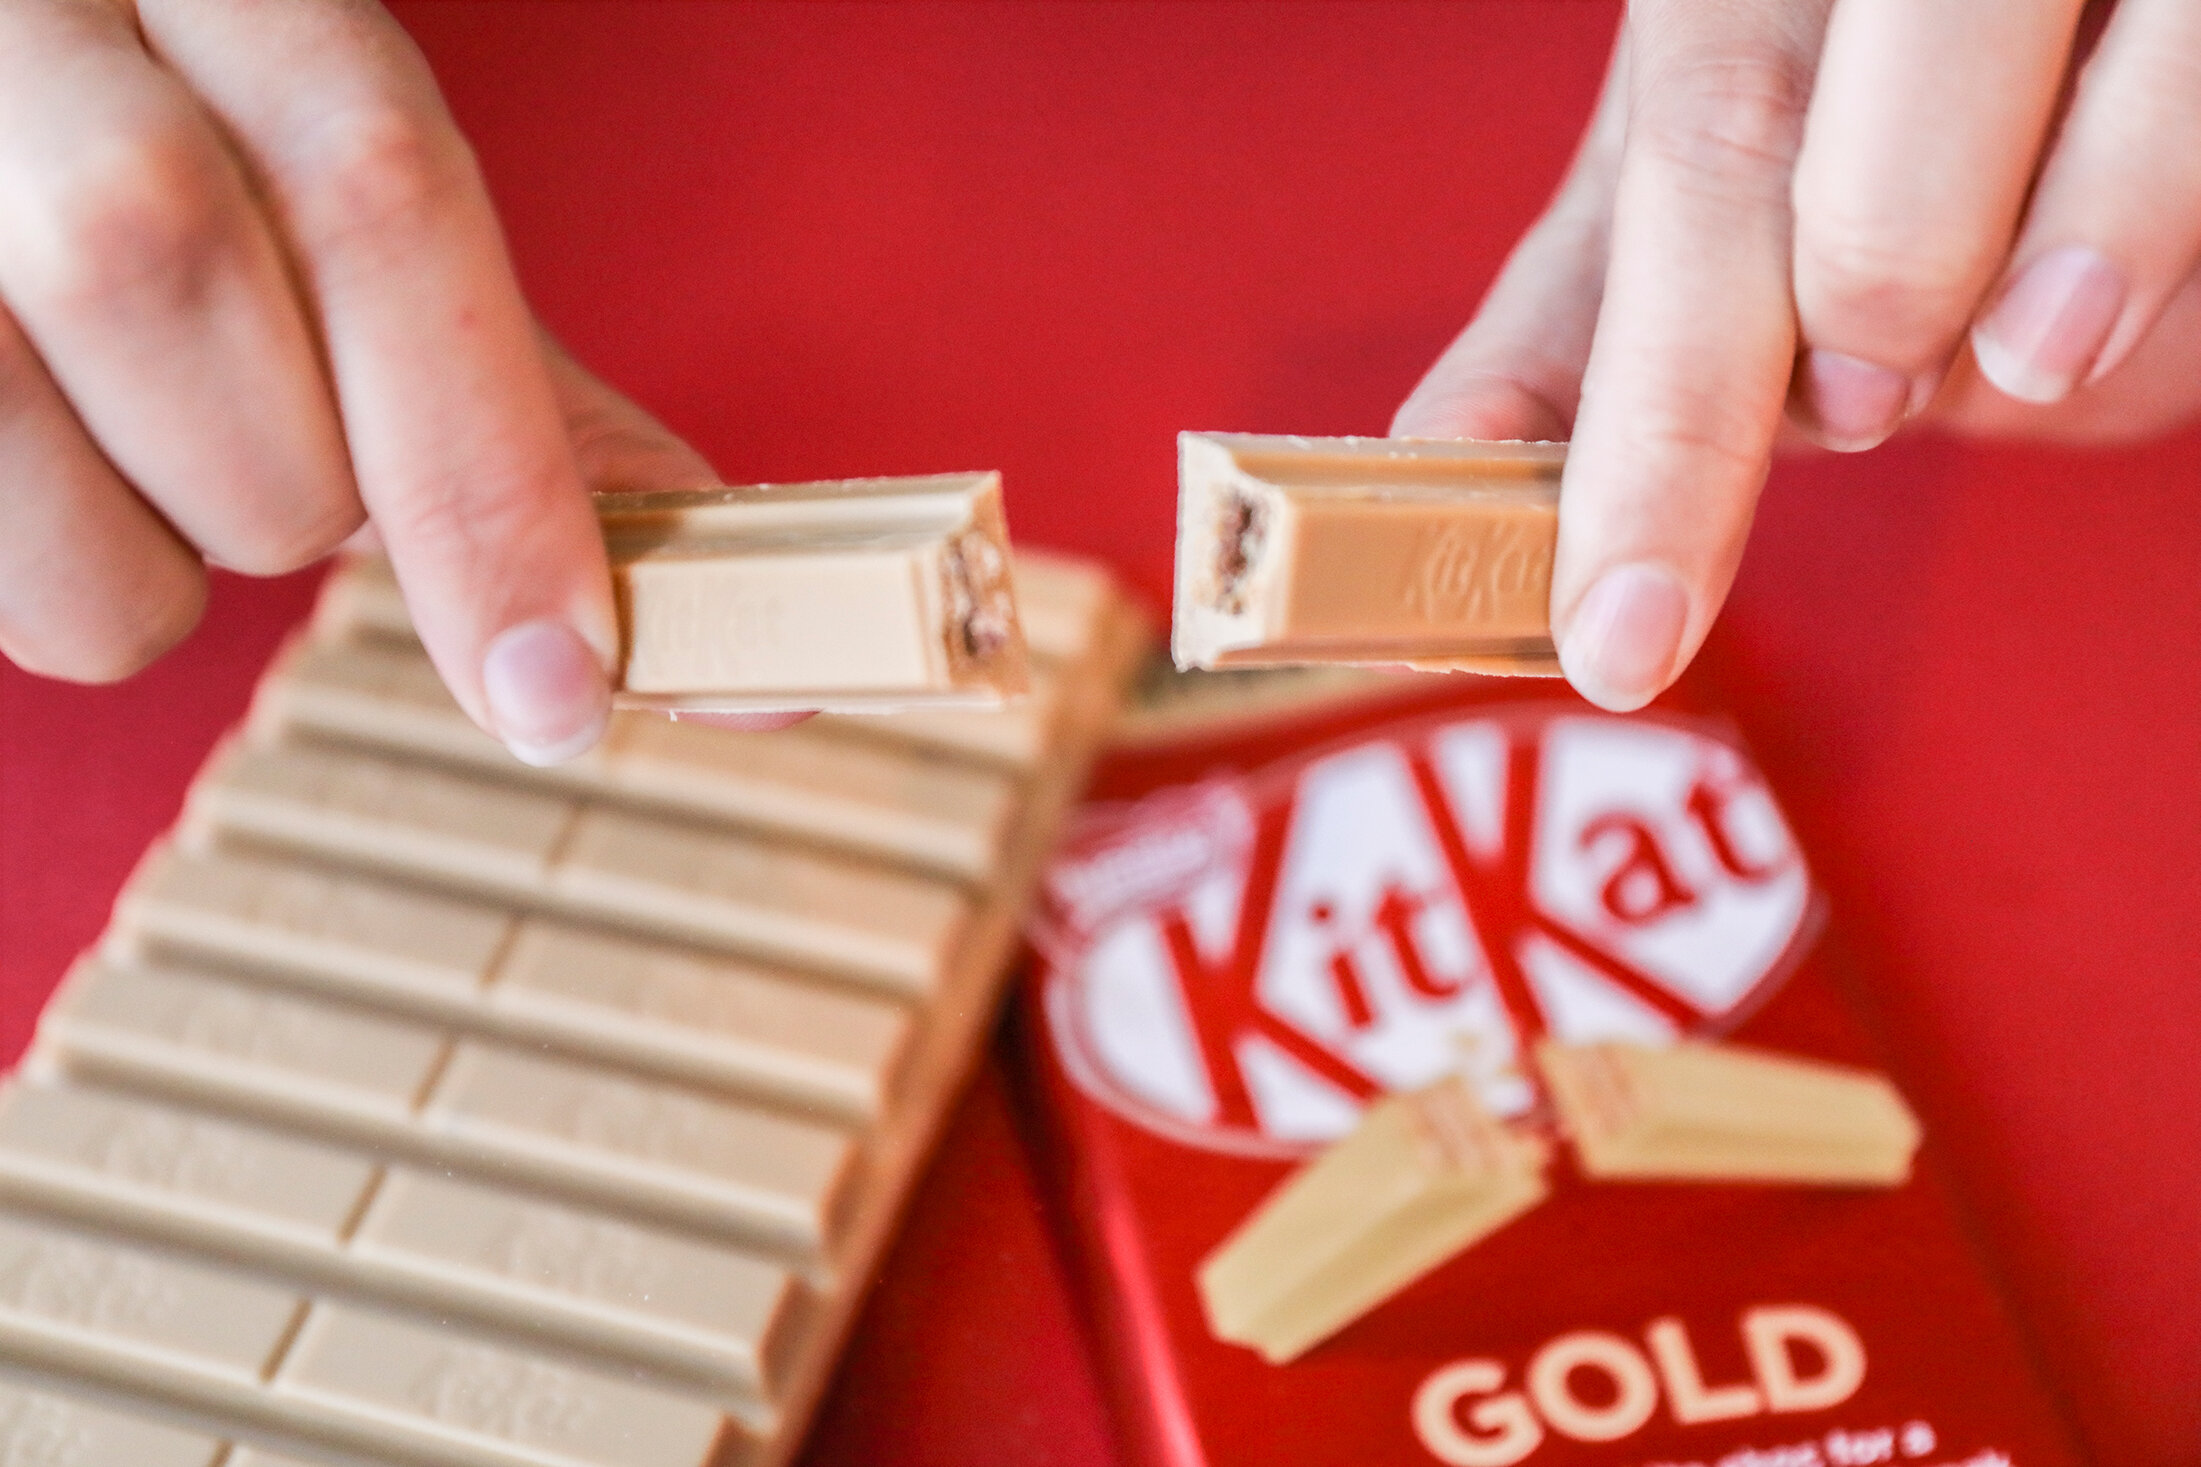 KITKAT GOLD LAUNCH